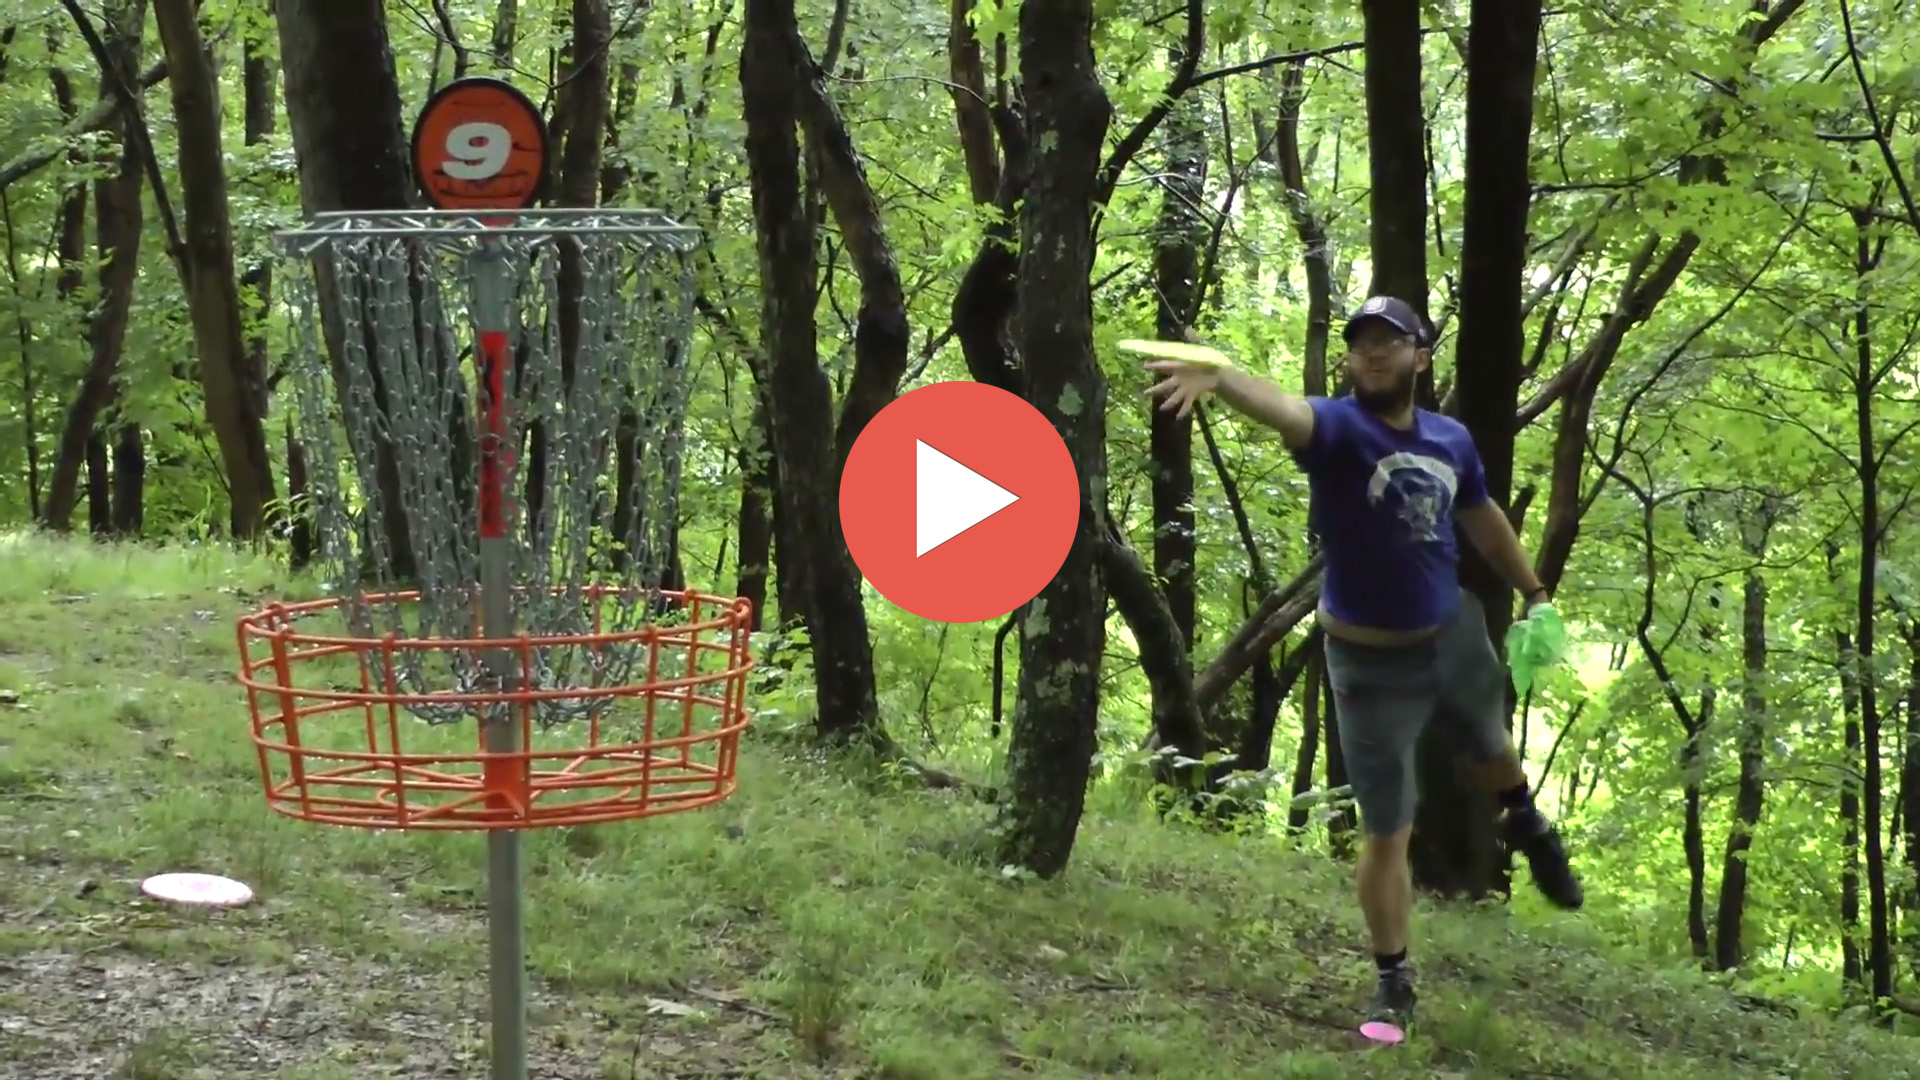 Trilogy Challenge 2017 Presented by Steel City Discs